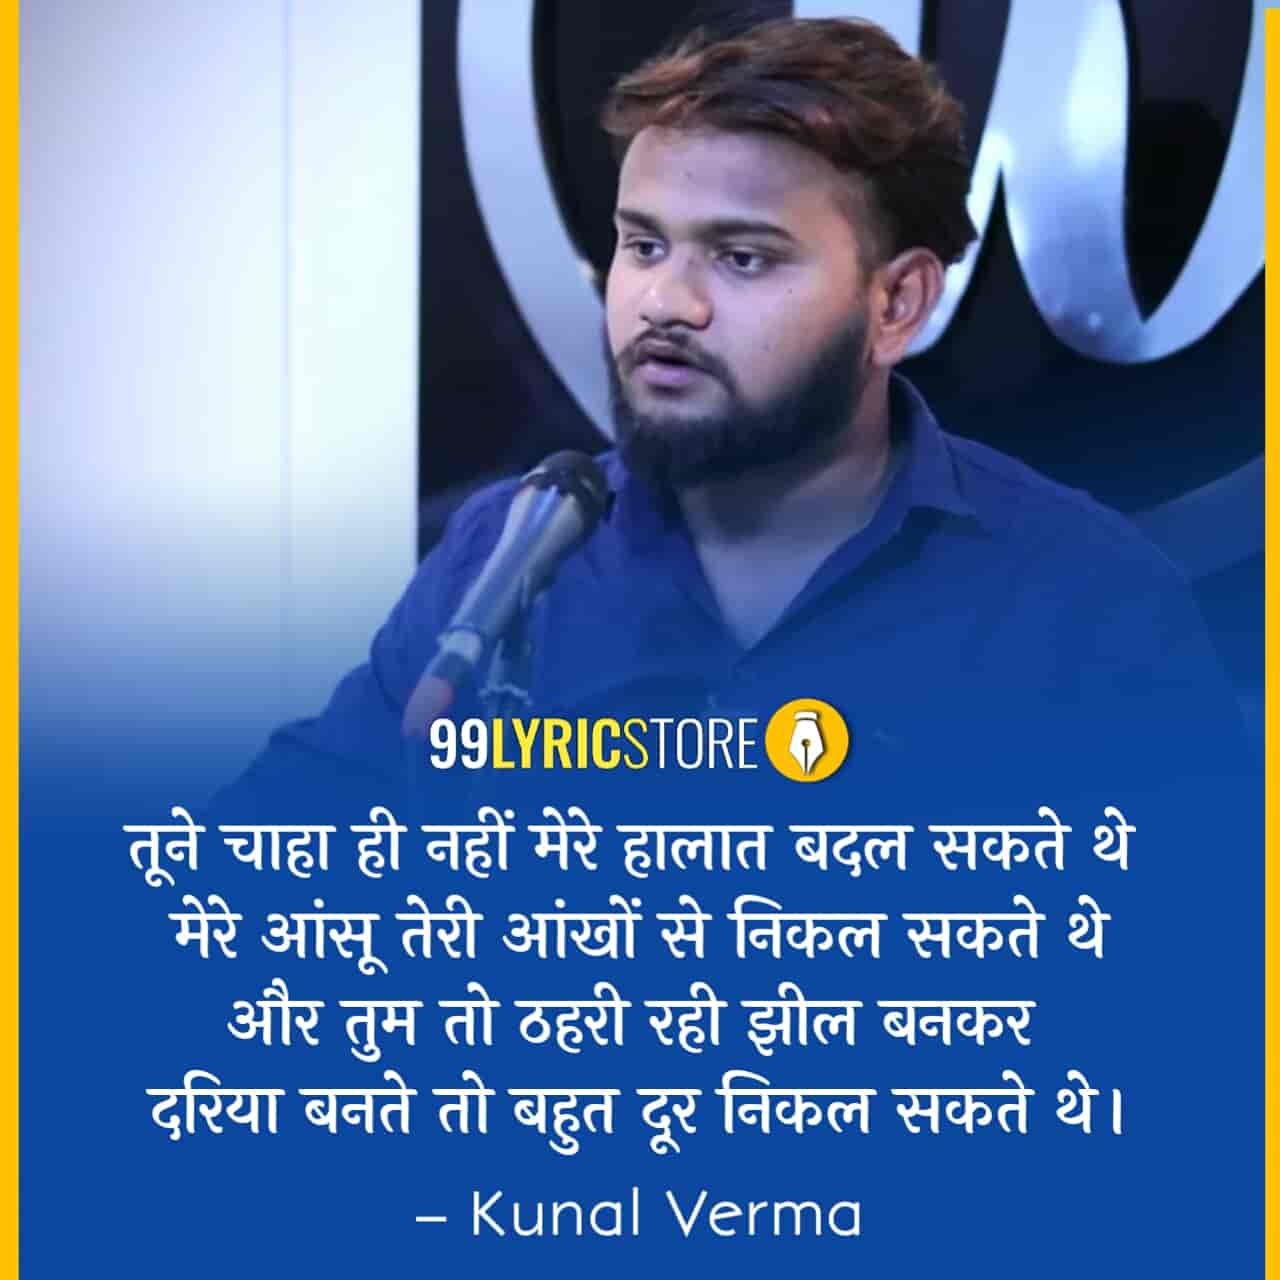 This beautiful poetry 'Mera Ghar To Barsaato Mein Jala Hai' has written and performed by Kunal Verma on stage of wordsutra.